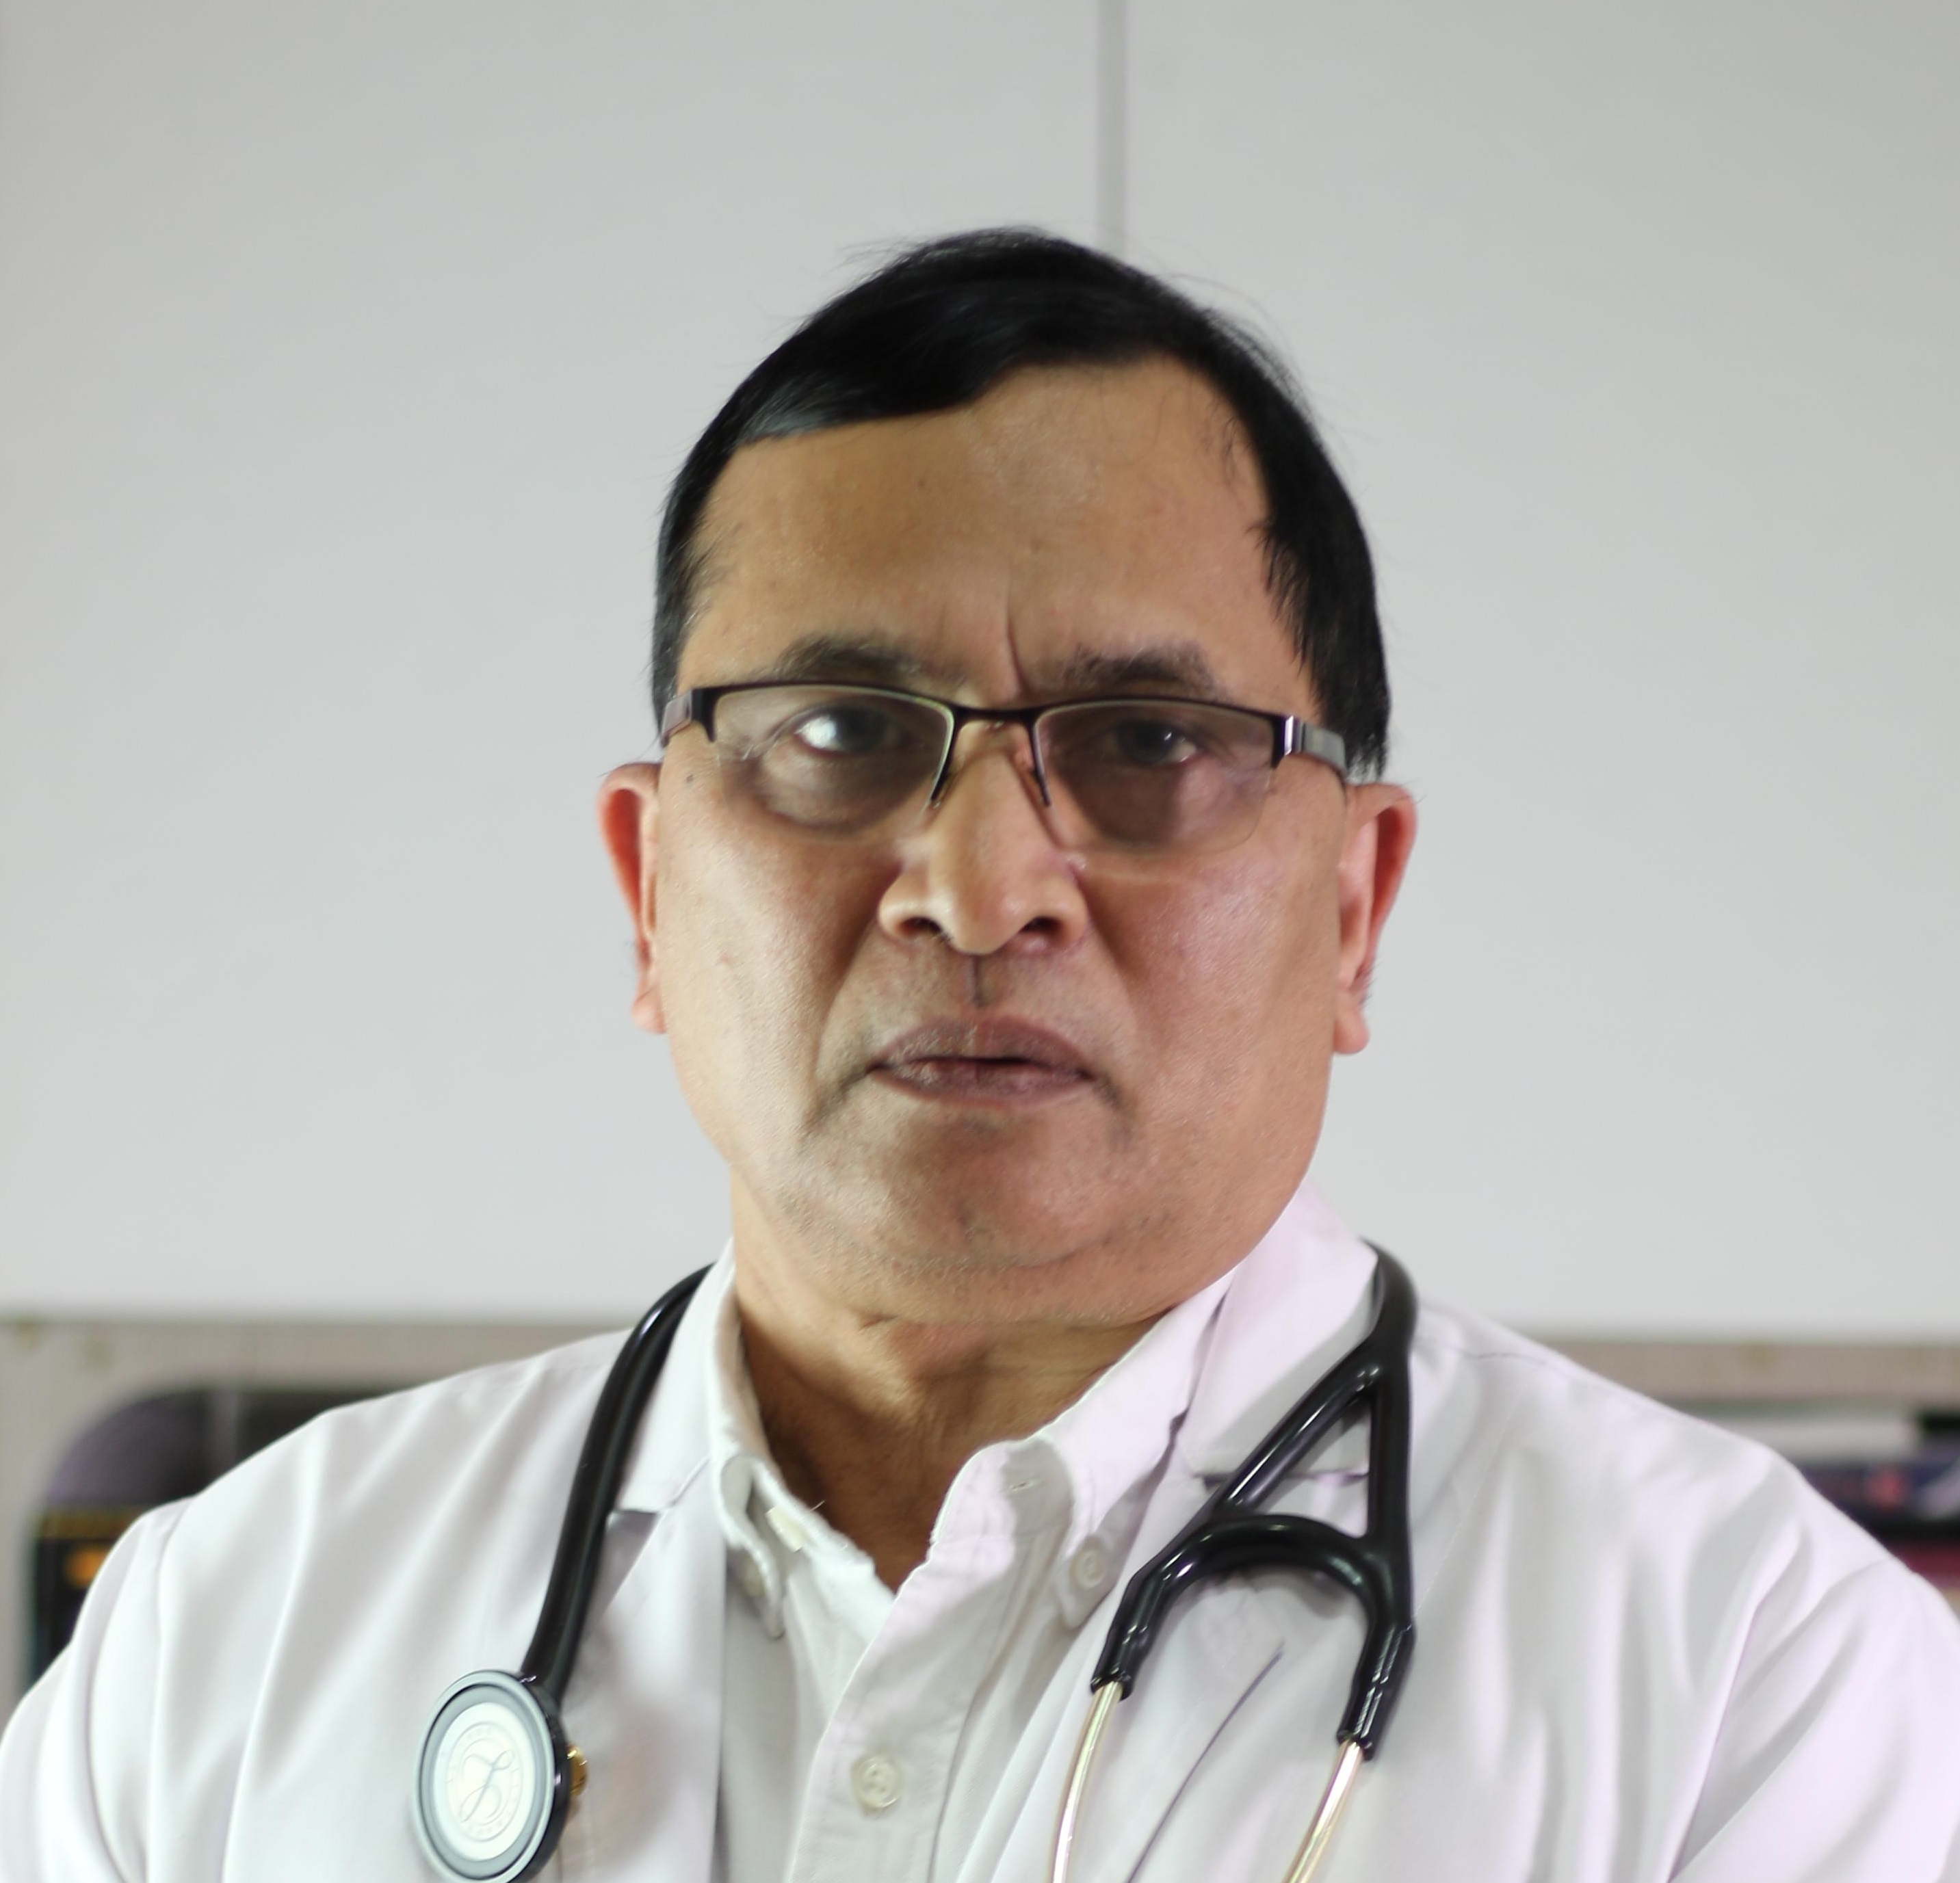 Dr Bhaba Nanda Das The Best Cardiothoracic Surgeon In India At Apollo Hospital Delhi India